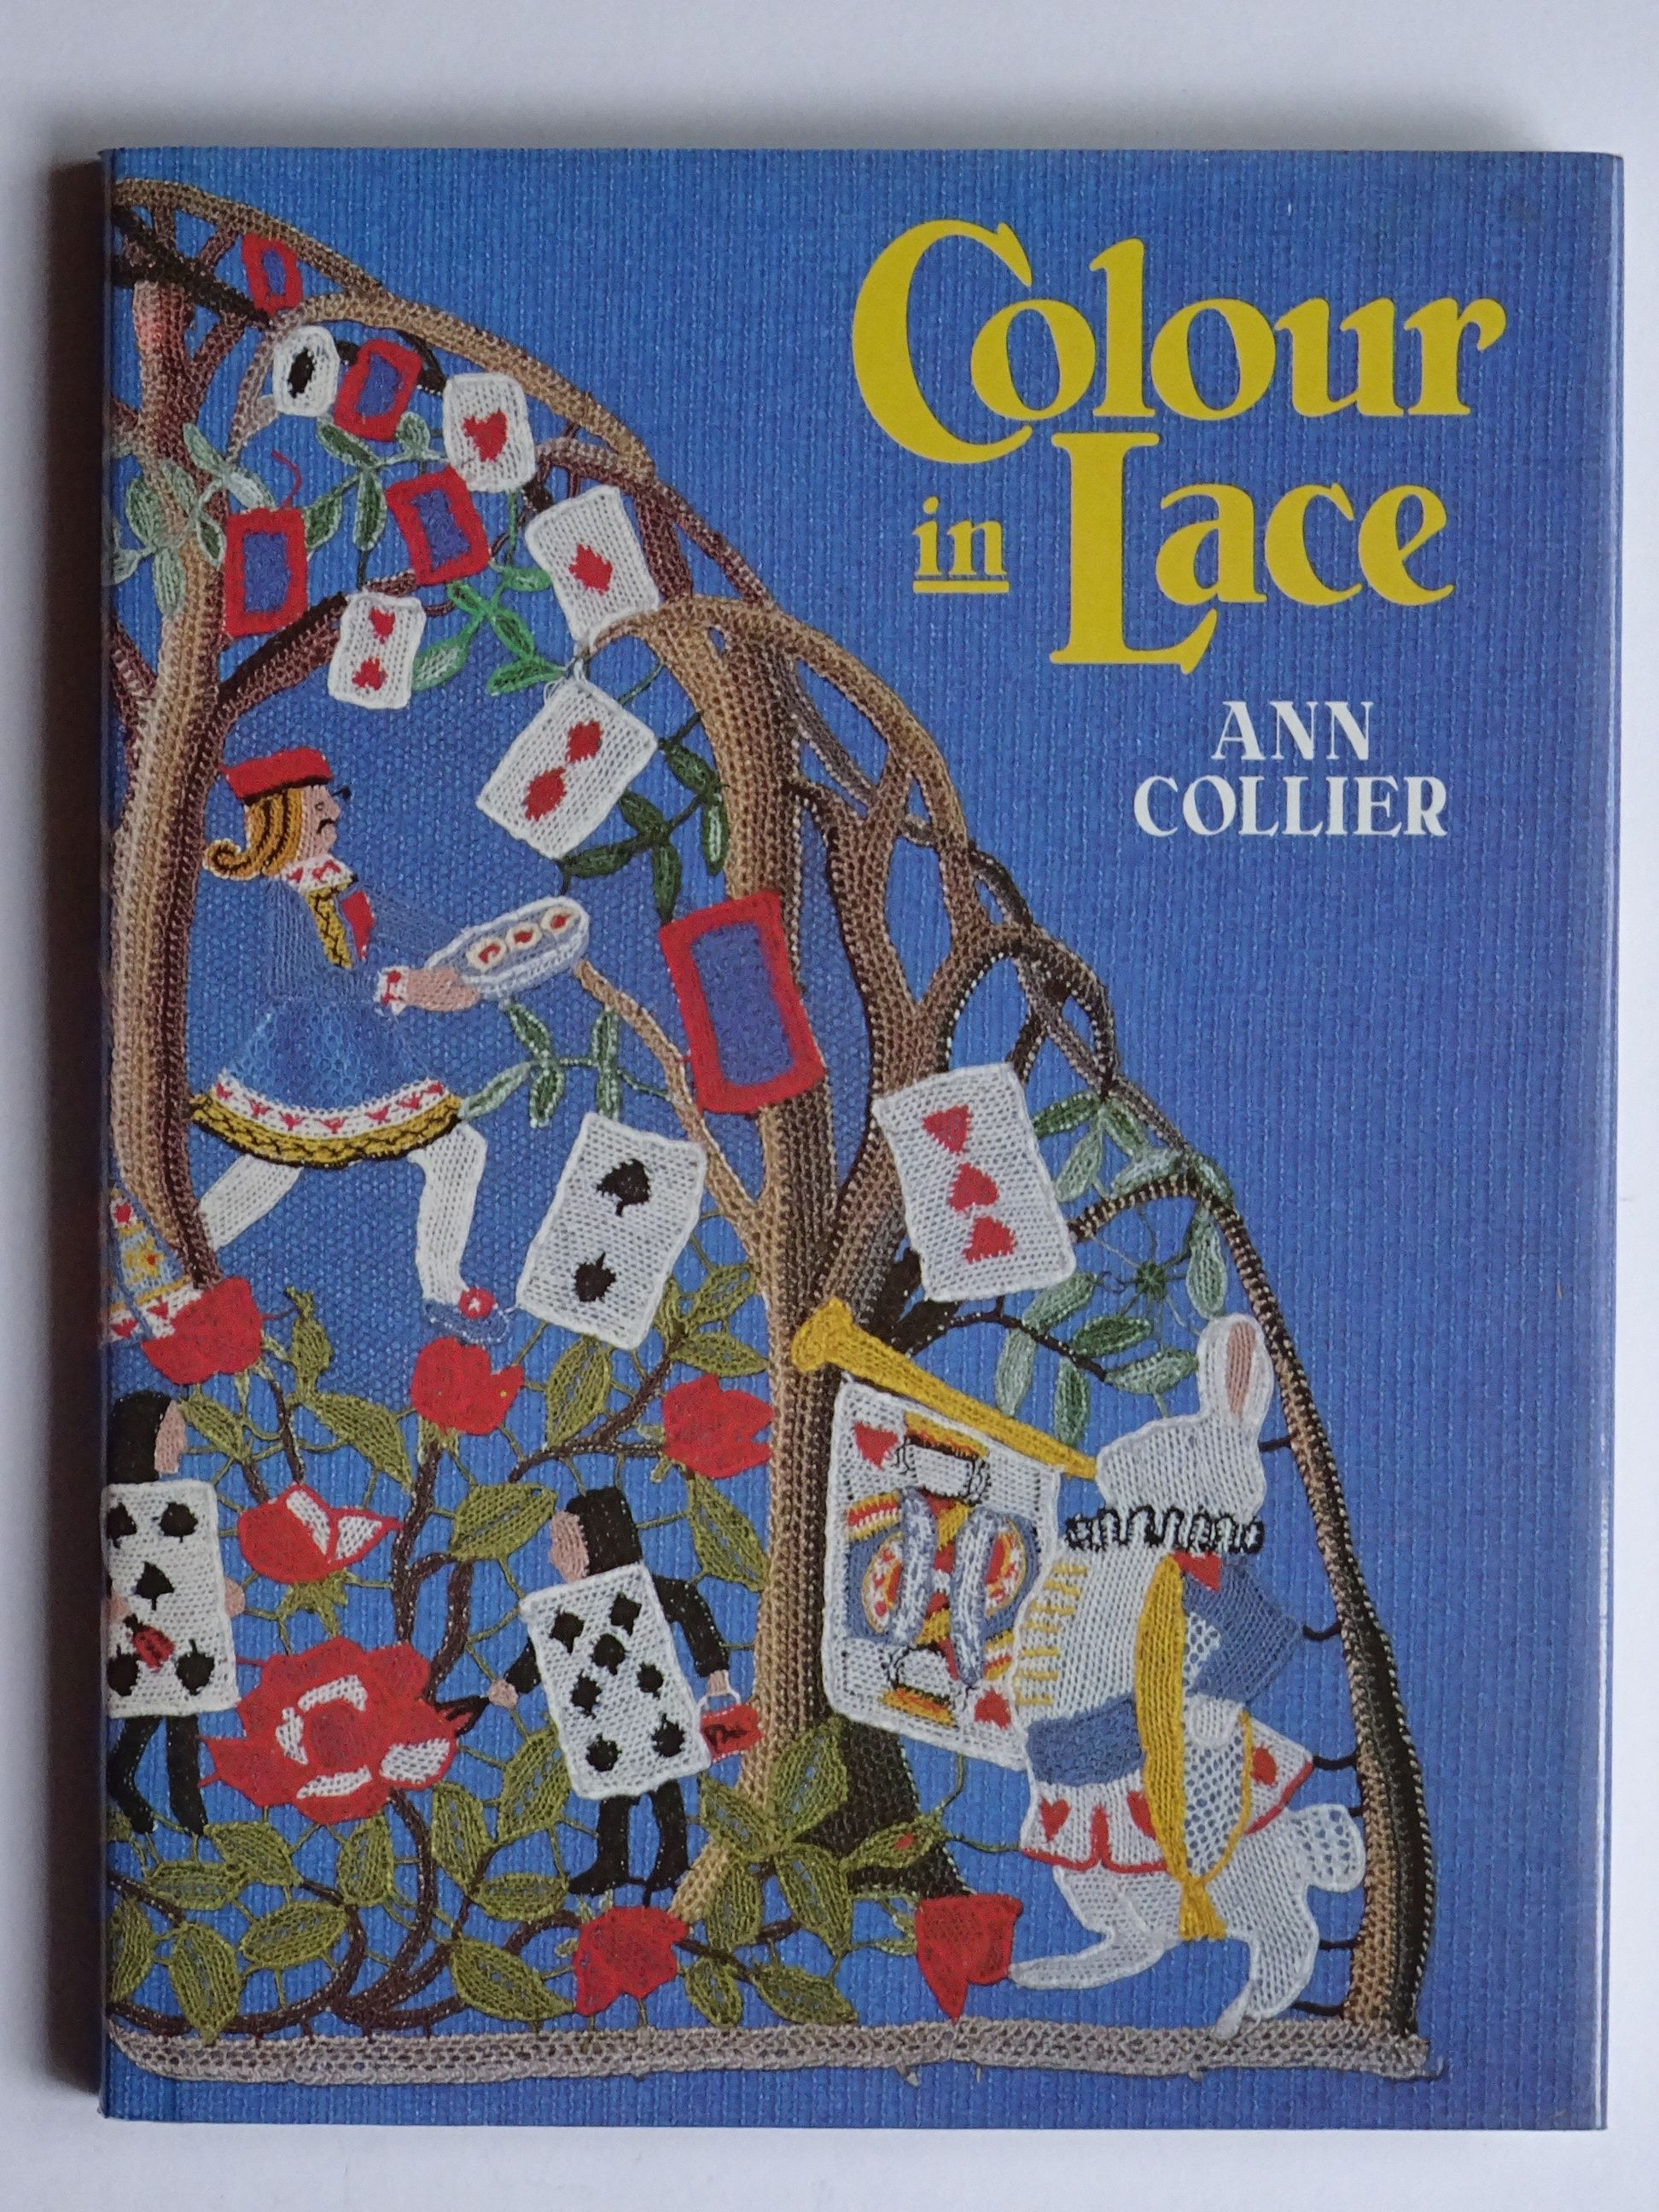 Collier, Ann  -  Colour in Lace